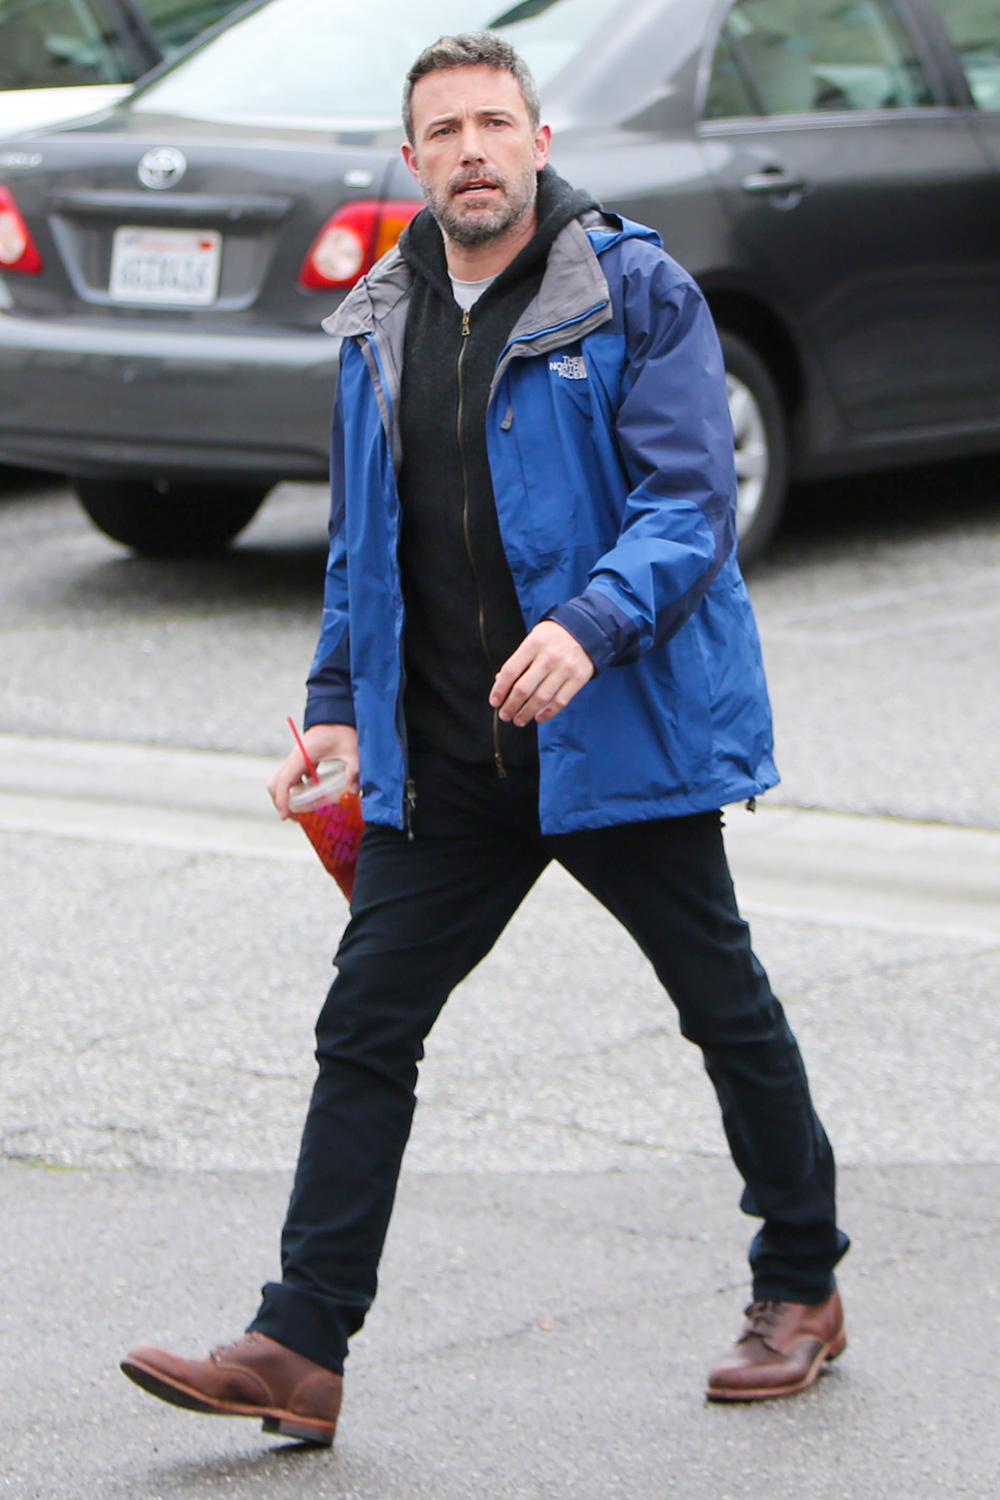 Ben Affleck is seen on March 14, 2020 in Los Angeles, California